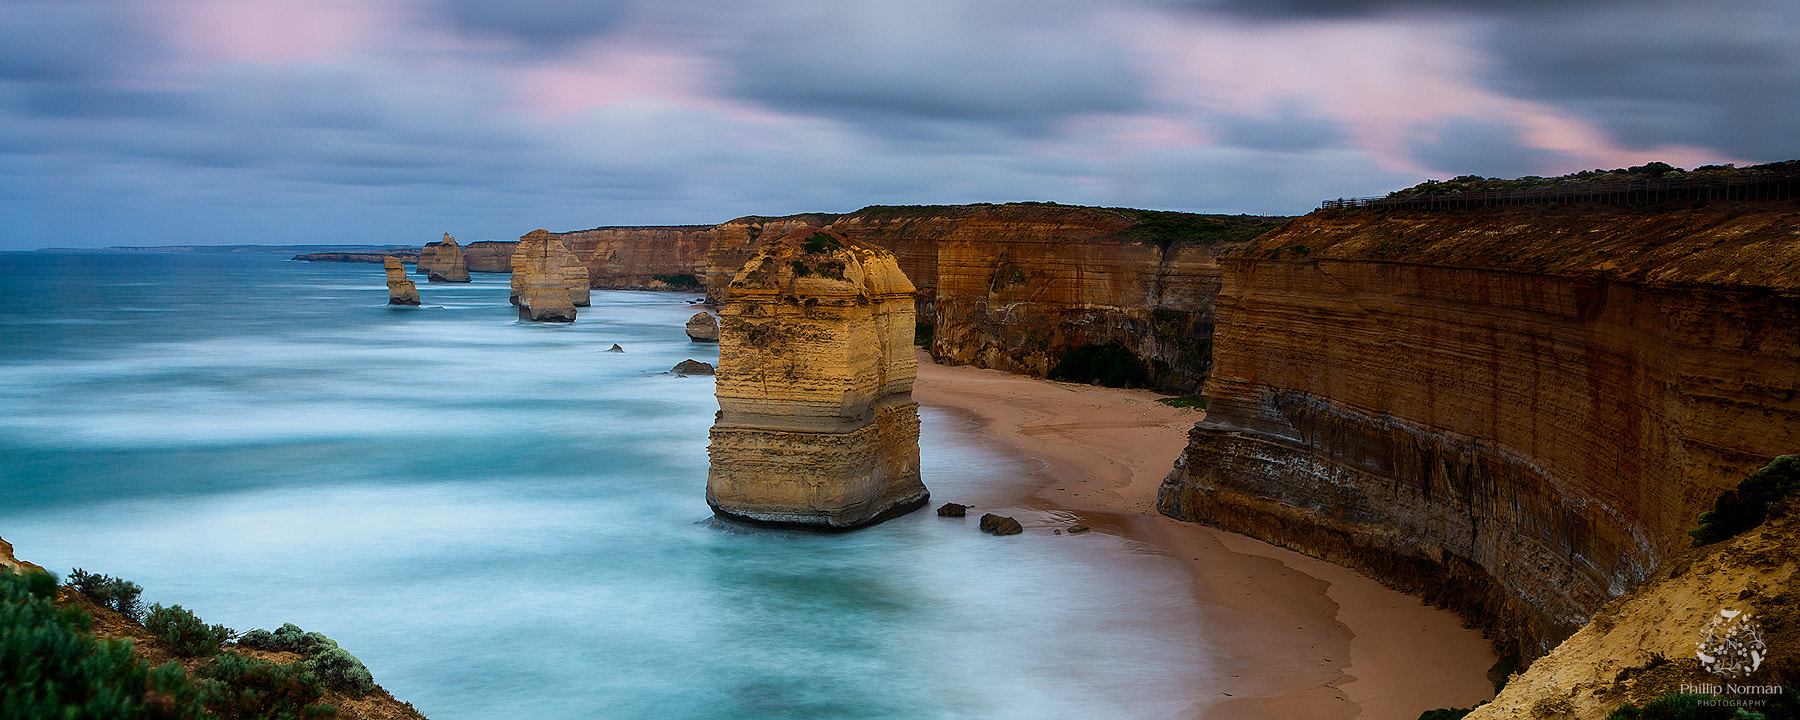 Photograph The Apostles Dream by Phillip Norman on 500px